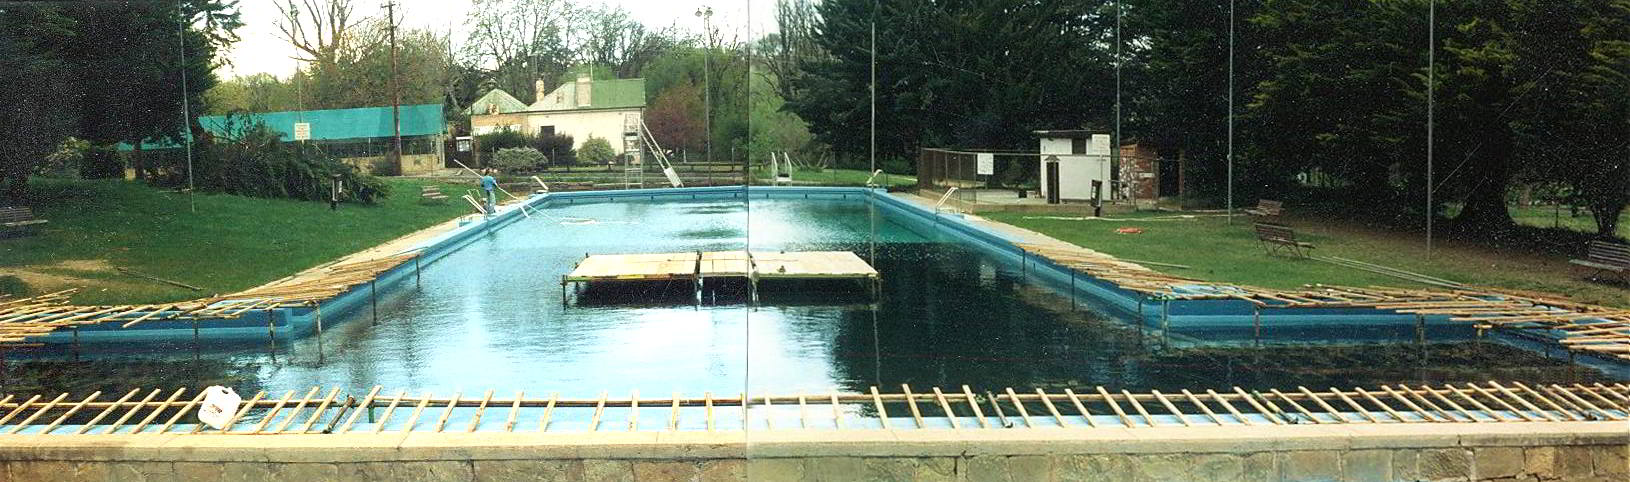 empty swimming pool lined with black plastic with a central scaffolding platform in the centre